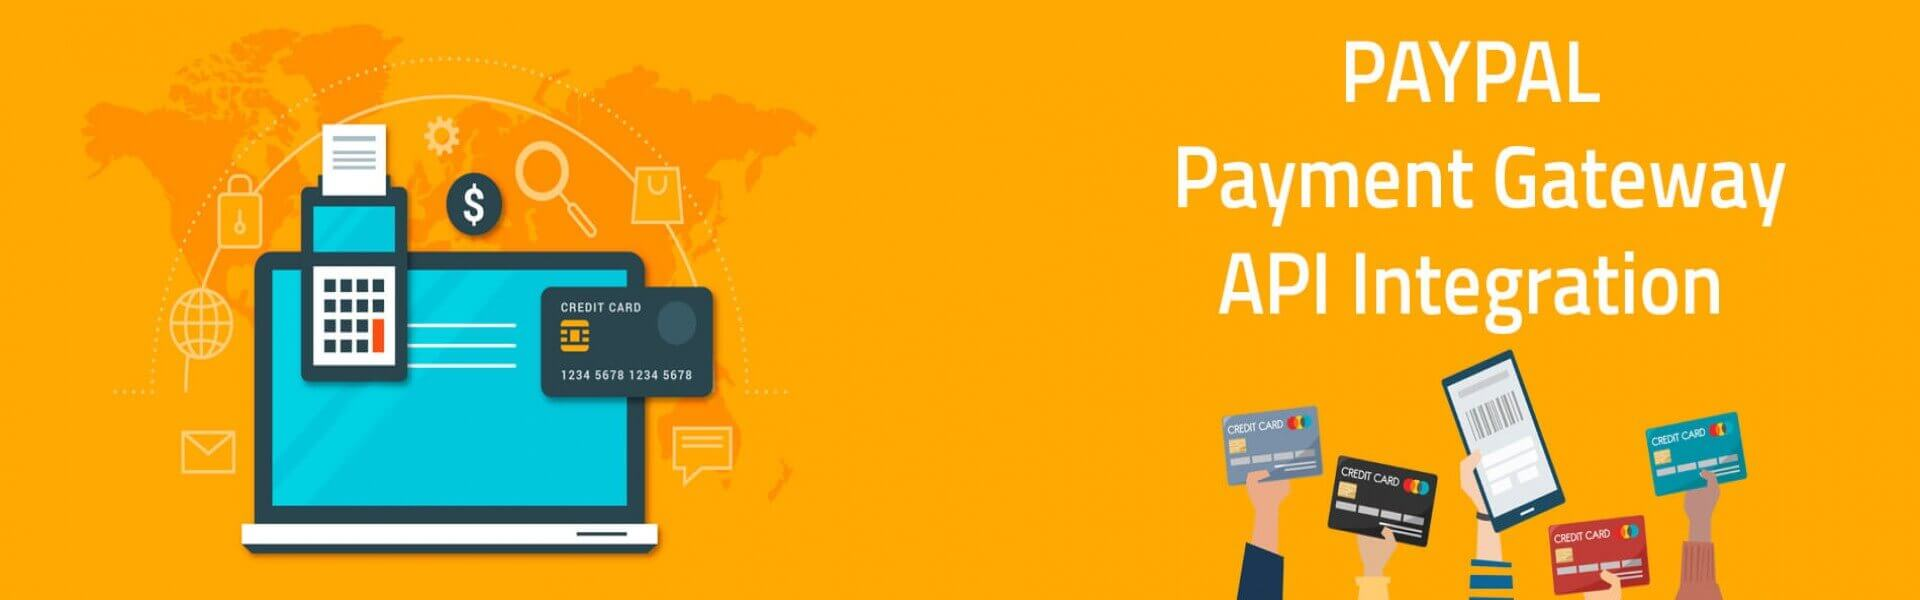 Online Payment Gateway Solutions Provider | Payment Gateway